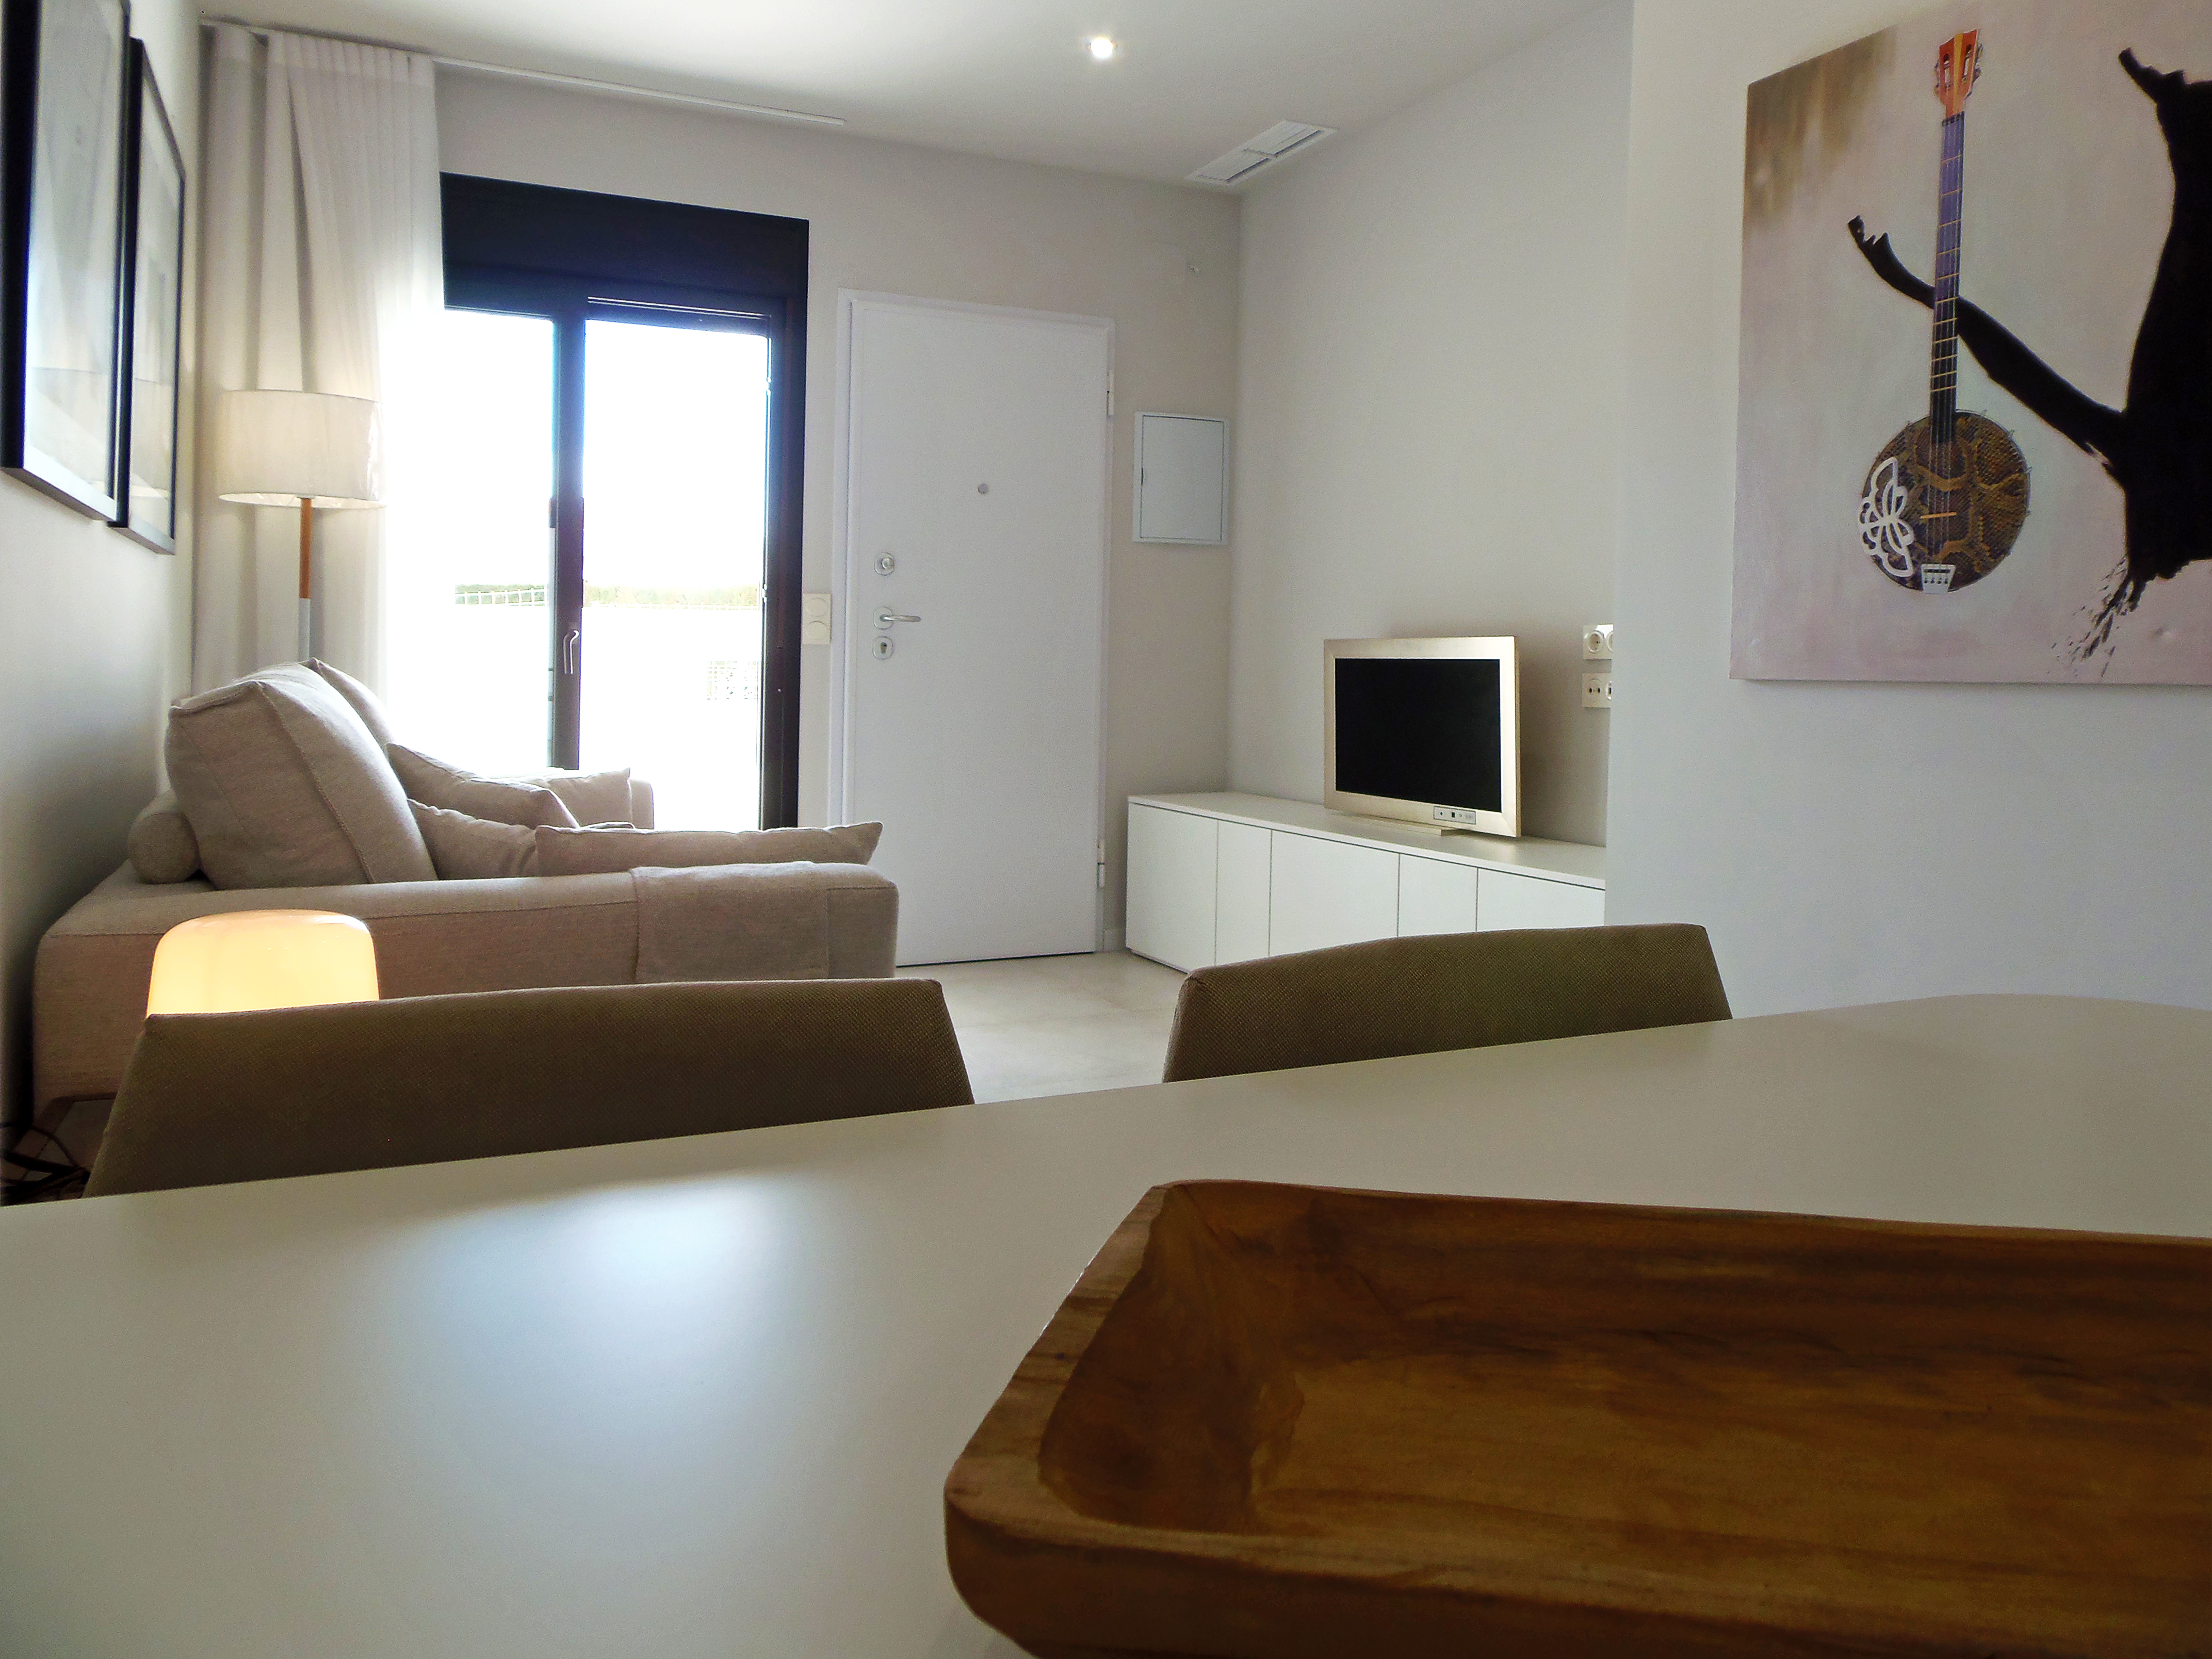 3 bedroom apartment For Sale in Mil Palmeras - photograph 12